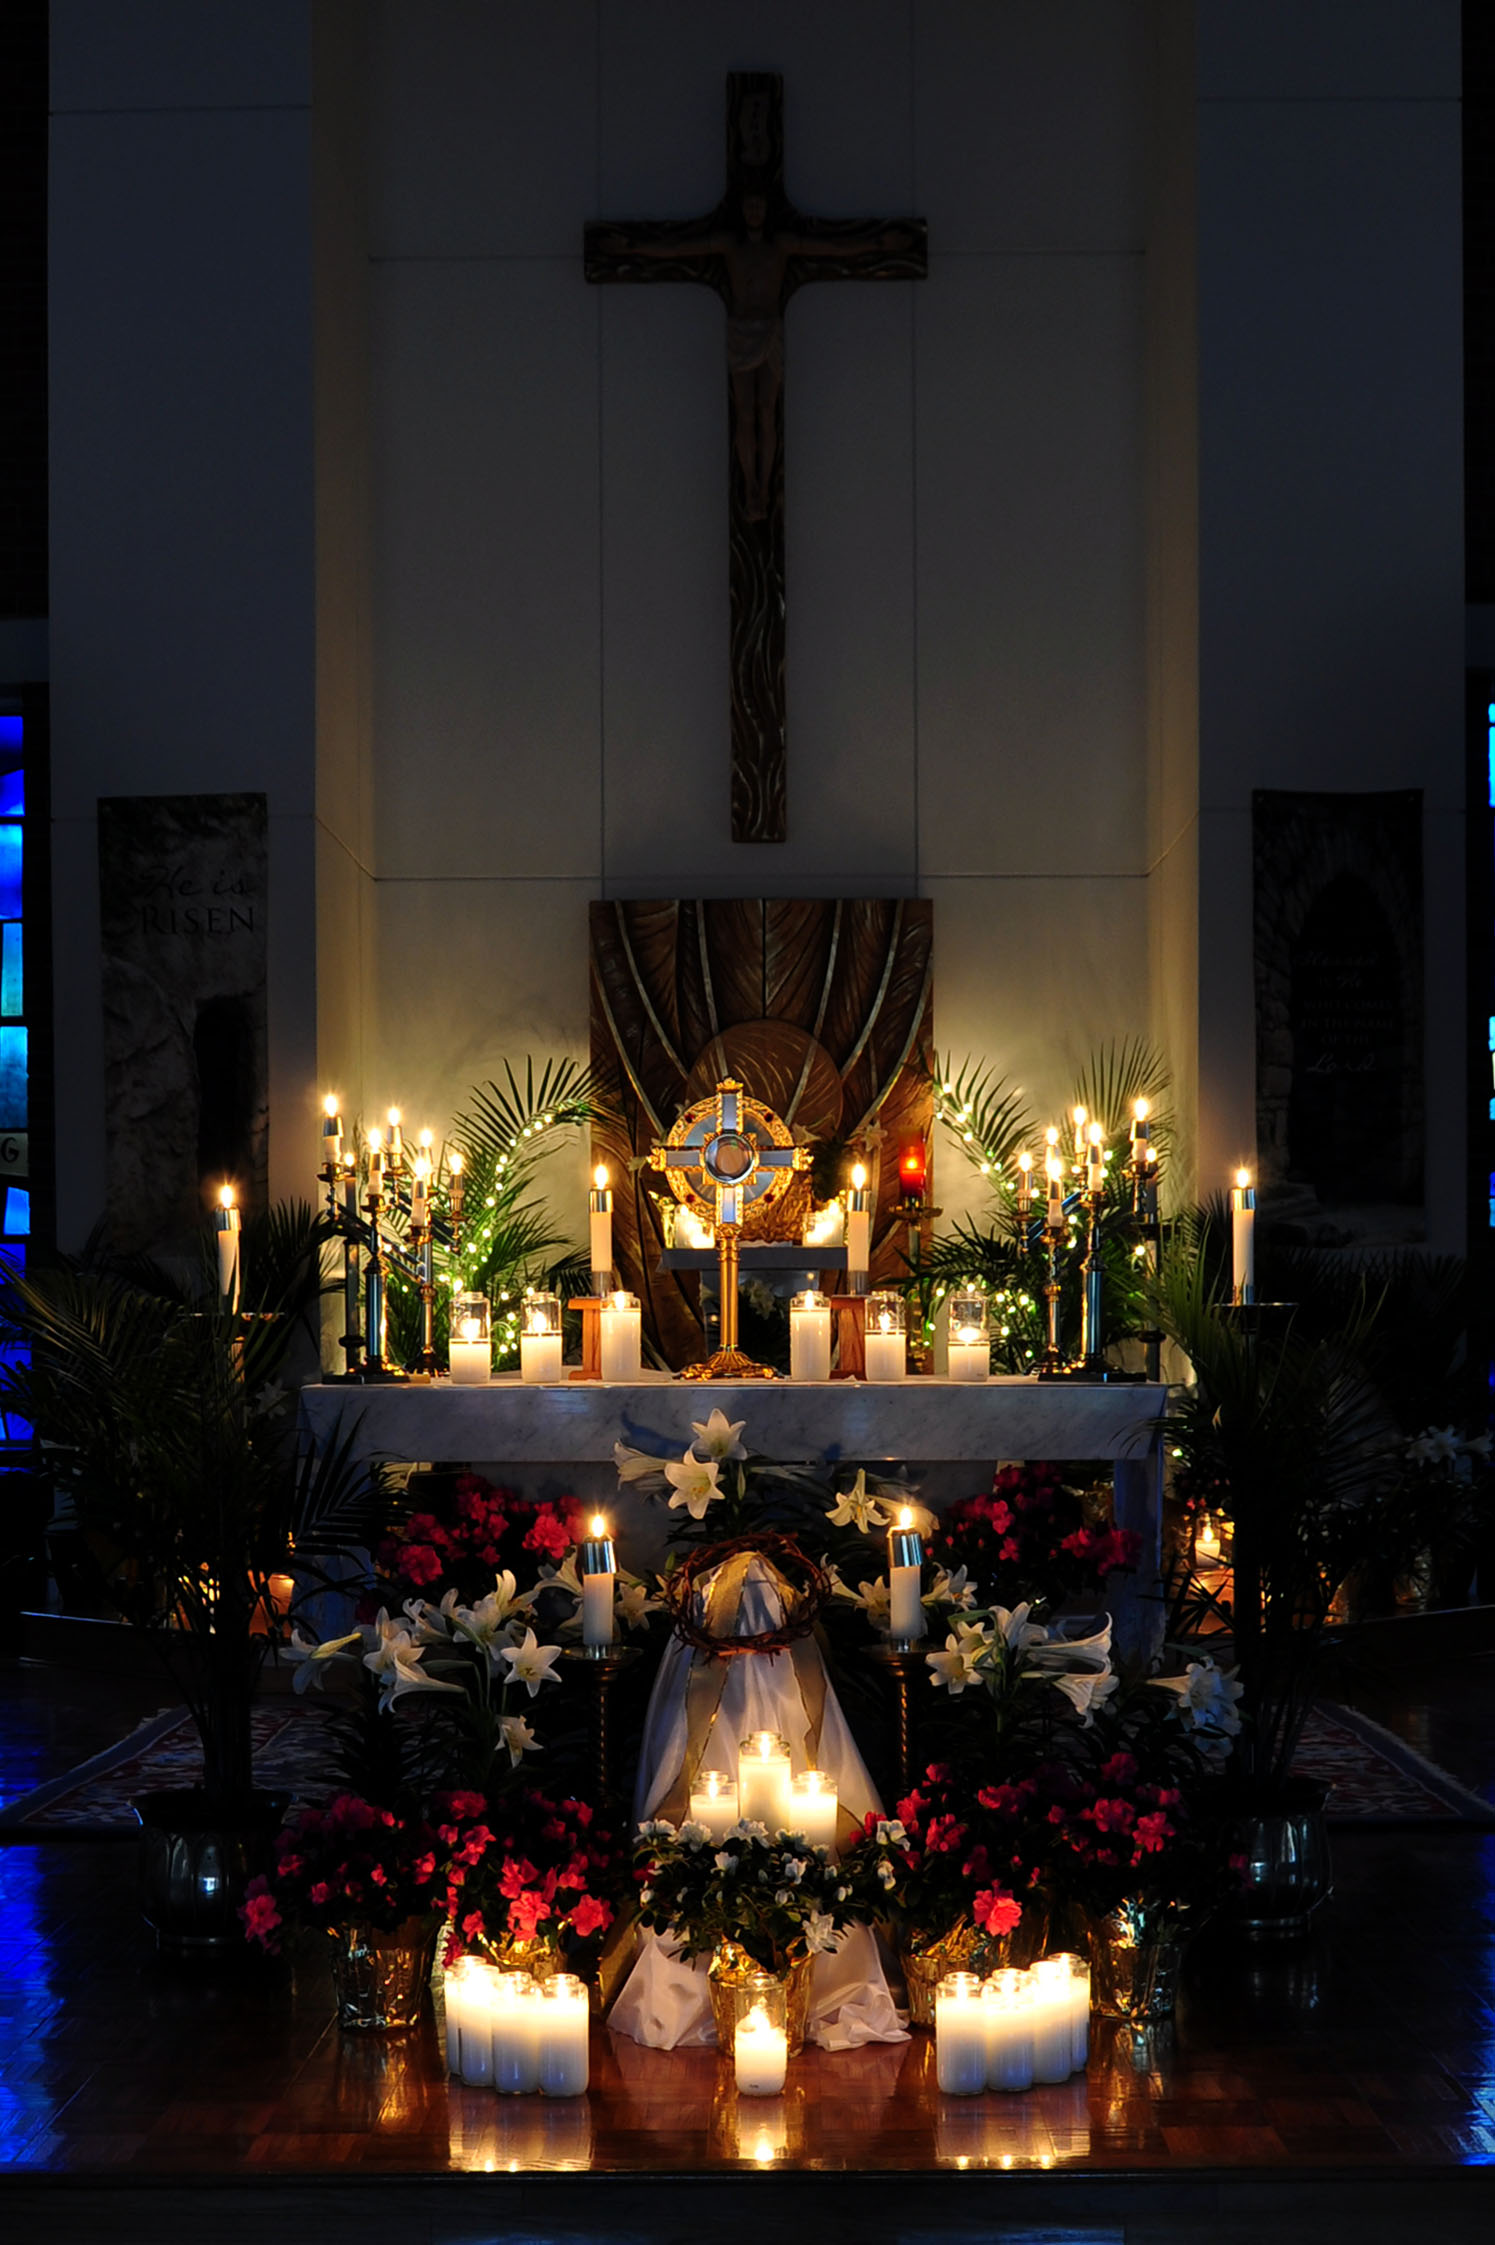 Feast of Divine Mercy Adoration